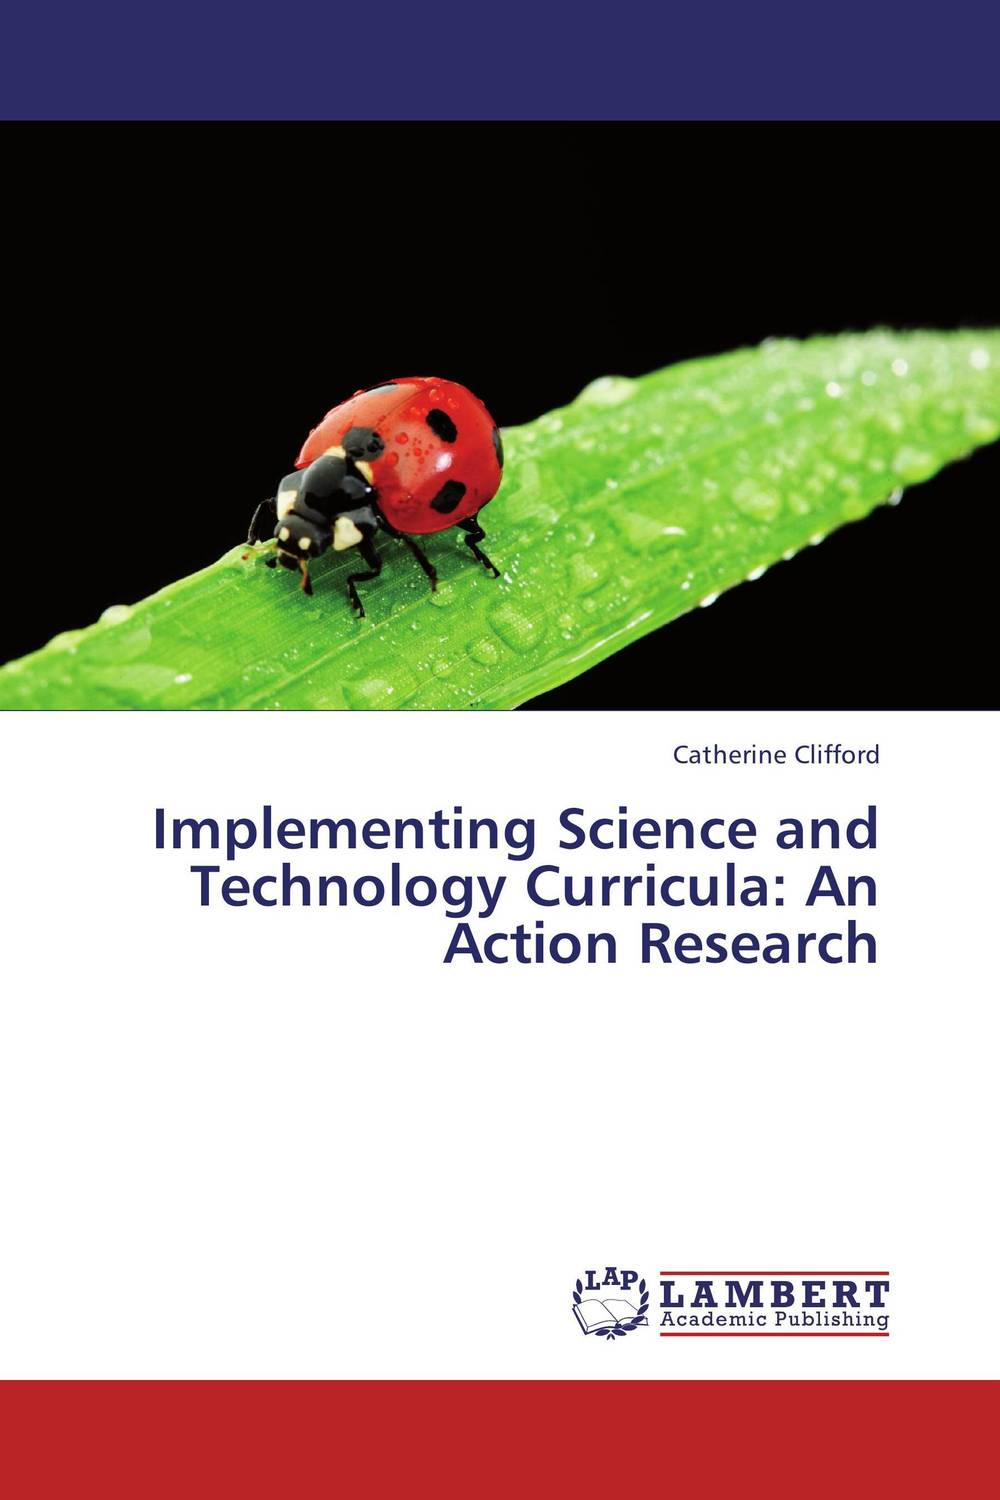 Implementing Science and Technology Curricula: An Action Research